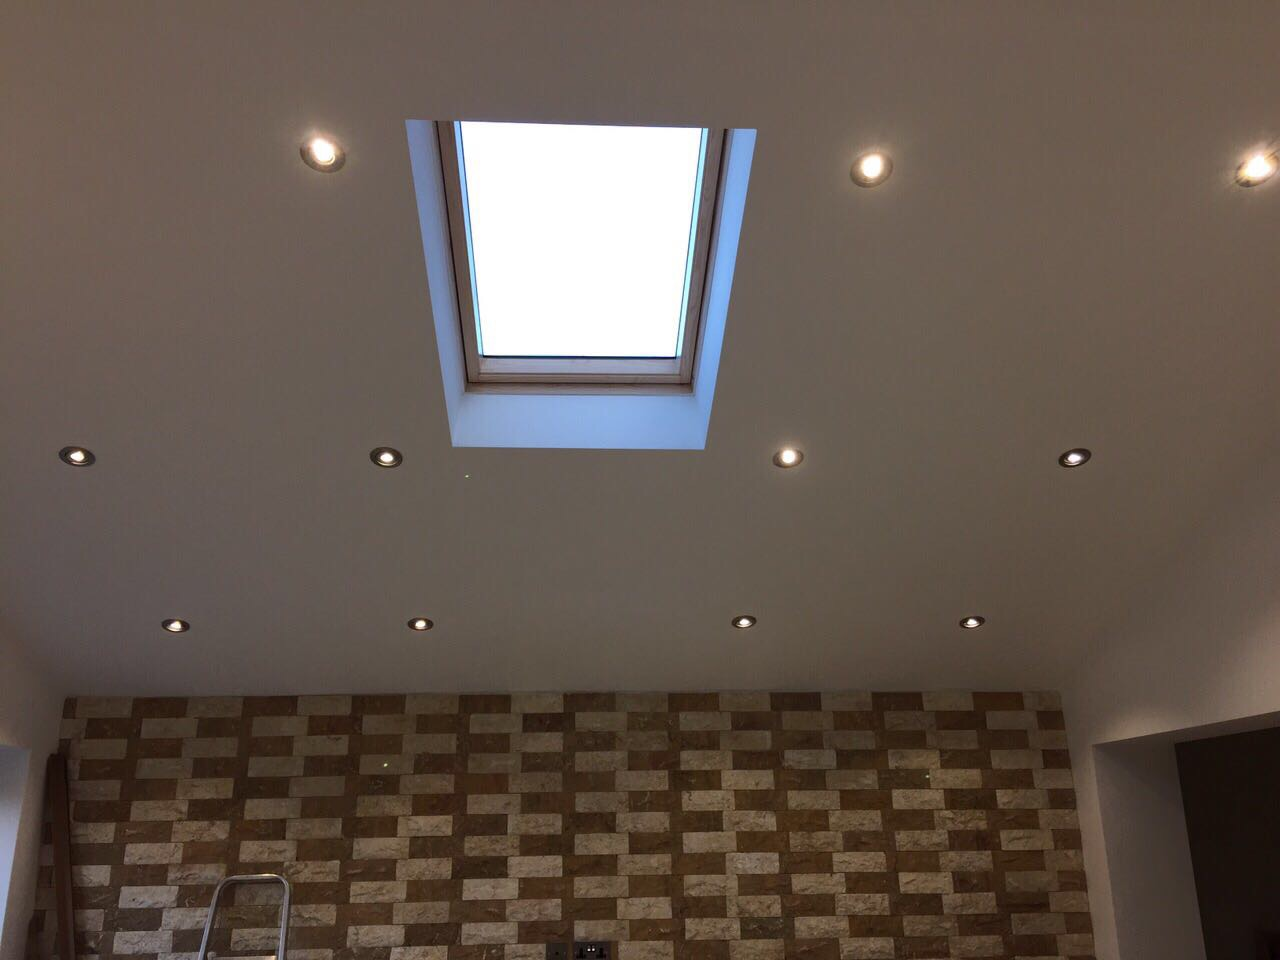 Skylight with spot lights